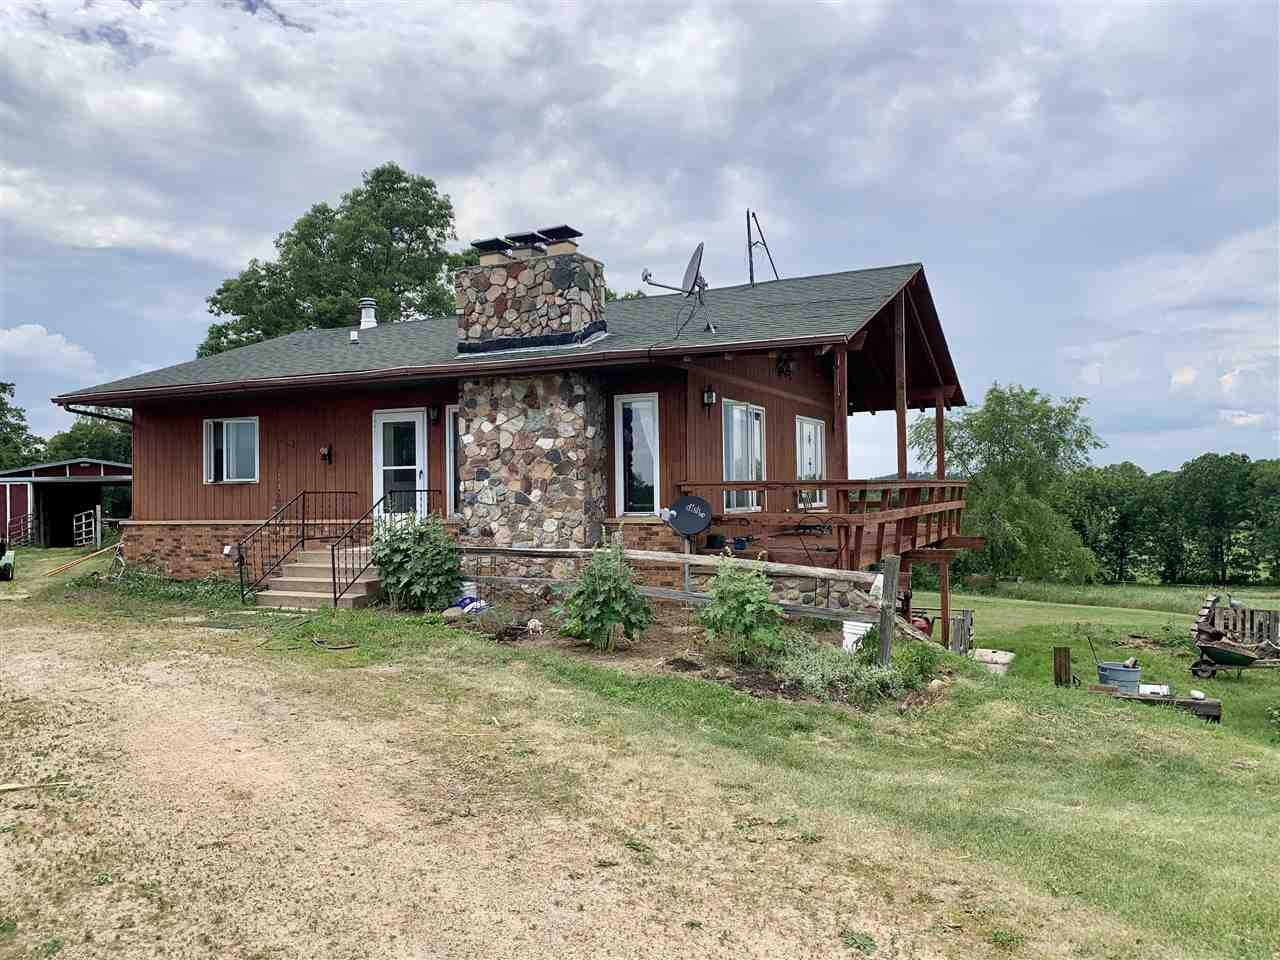 Private Country Retreat includes 18 Acres! Currently being as a Horse Ranch!  Property features 3 bedroom, 2 bath ranch with walk-out. 32x64 outbuilding with 6 stalls, 20x24 heated detached garage & 5 loafing sheds. Majority of land is fenced in. Roof '08; Furnace/Wood burning 2010. $200 HOA fee is for private road maintenance.